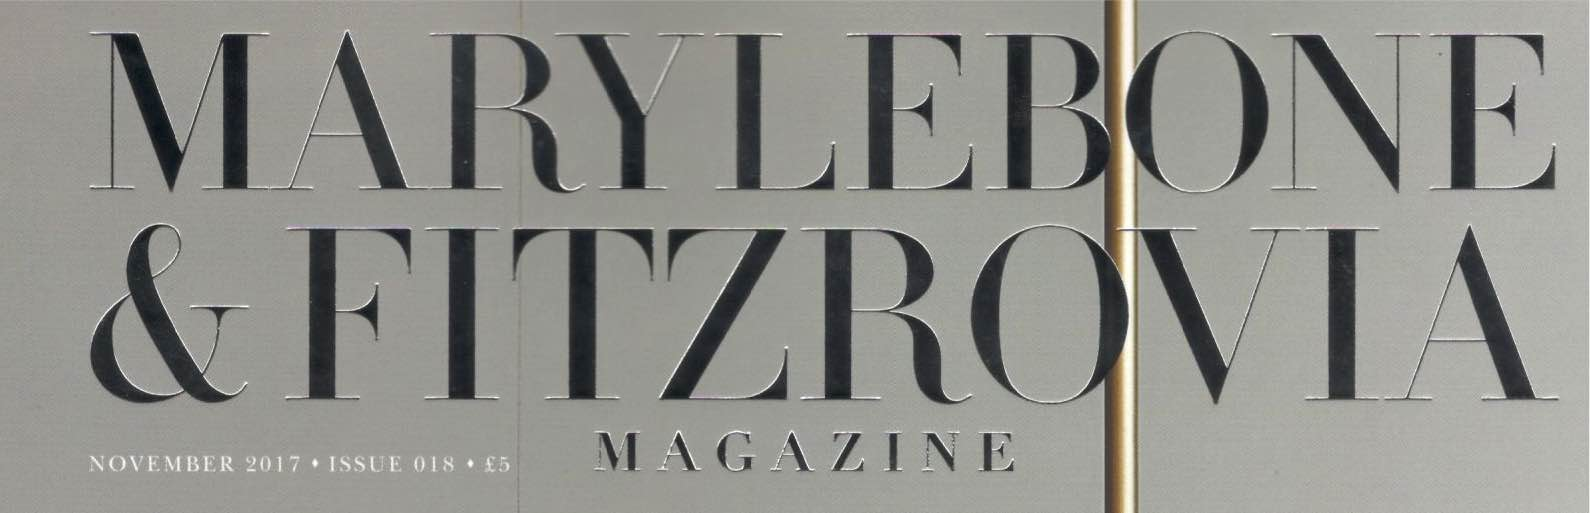 Marylebone & Fitzrovia Magazine, November 2017